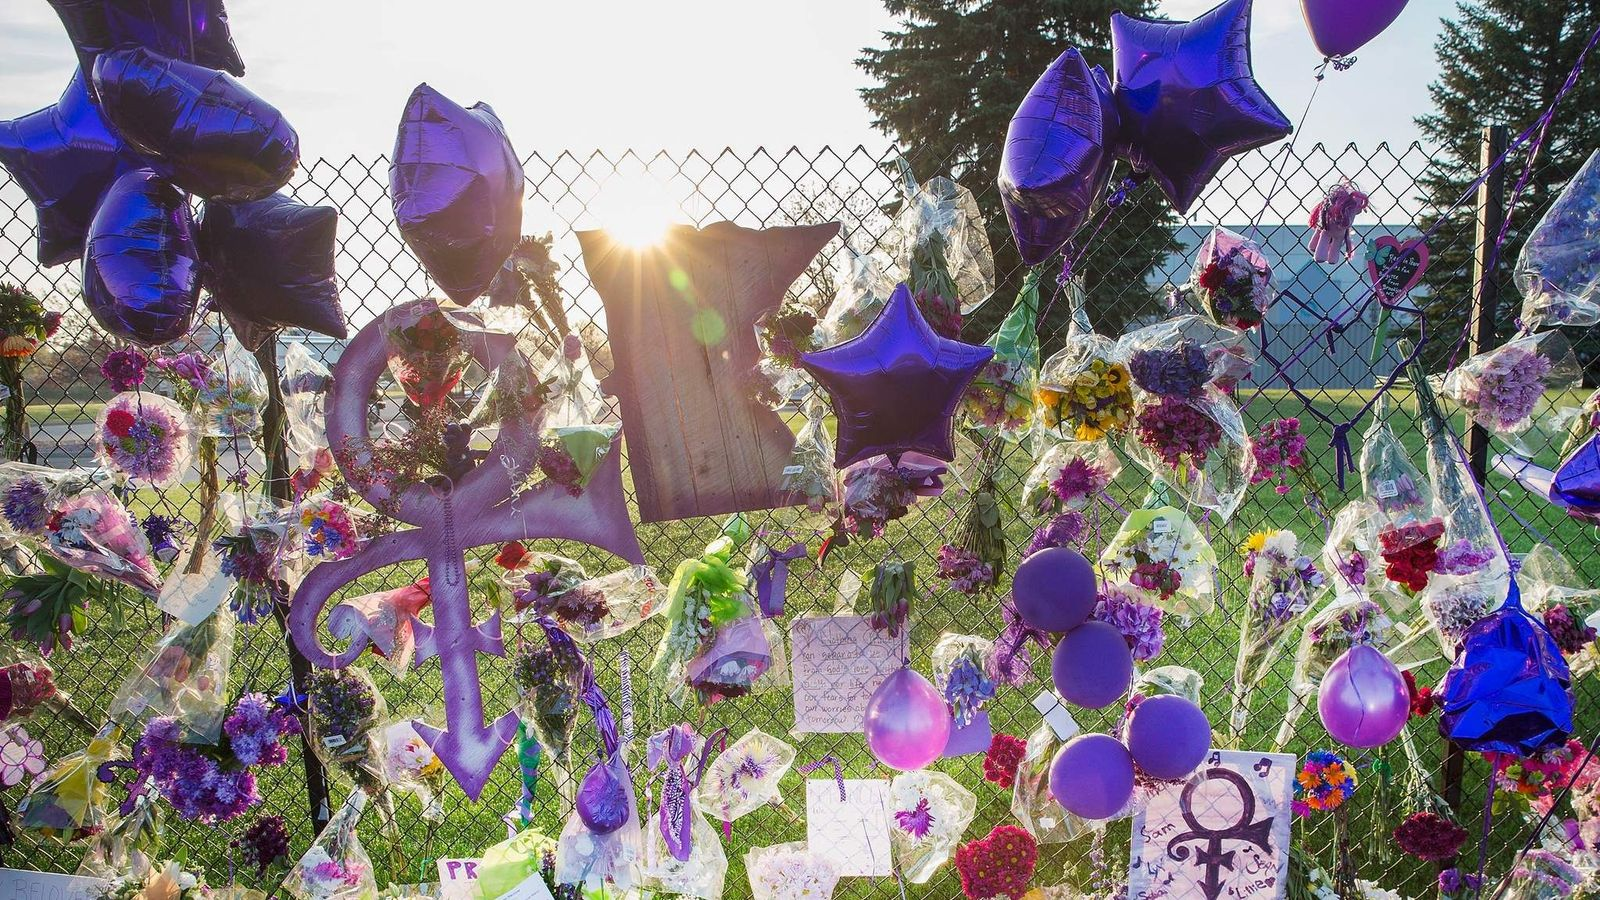 Prince secretly cremated by family and friends izmirmasajfo